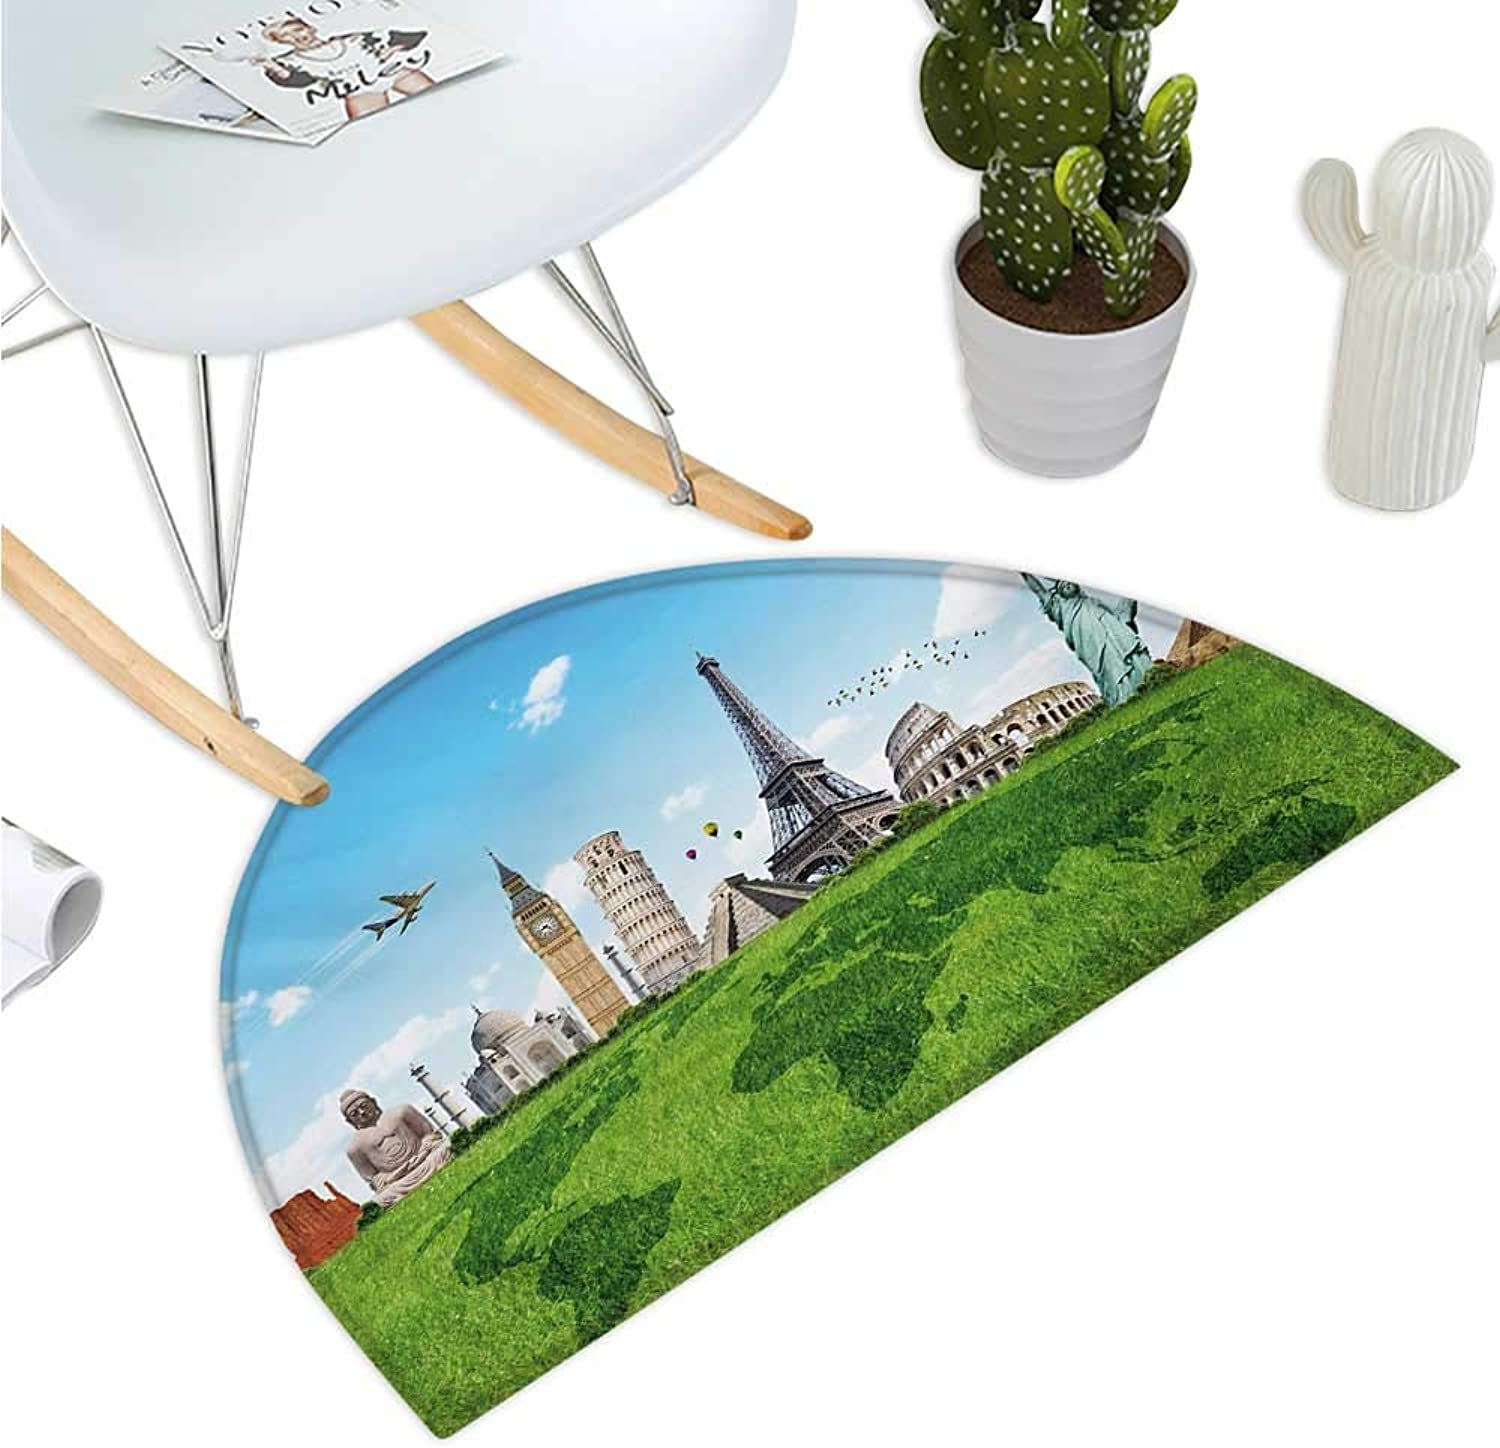 Map Semicircular Cushion Famous Historical Monuments of The World Theme Holiday Travel Destinations Entry Door Mat H 35.4  xD 53.1  Pale bluee Green Ivory